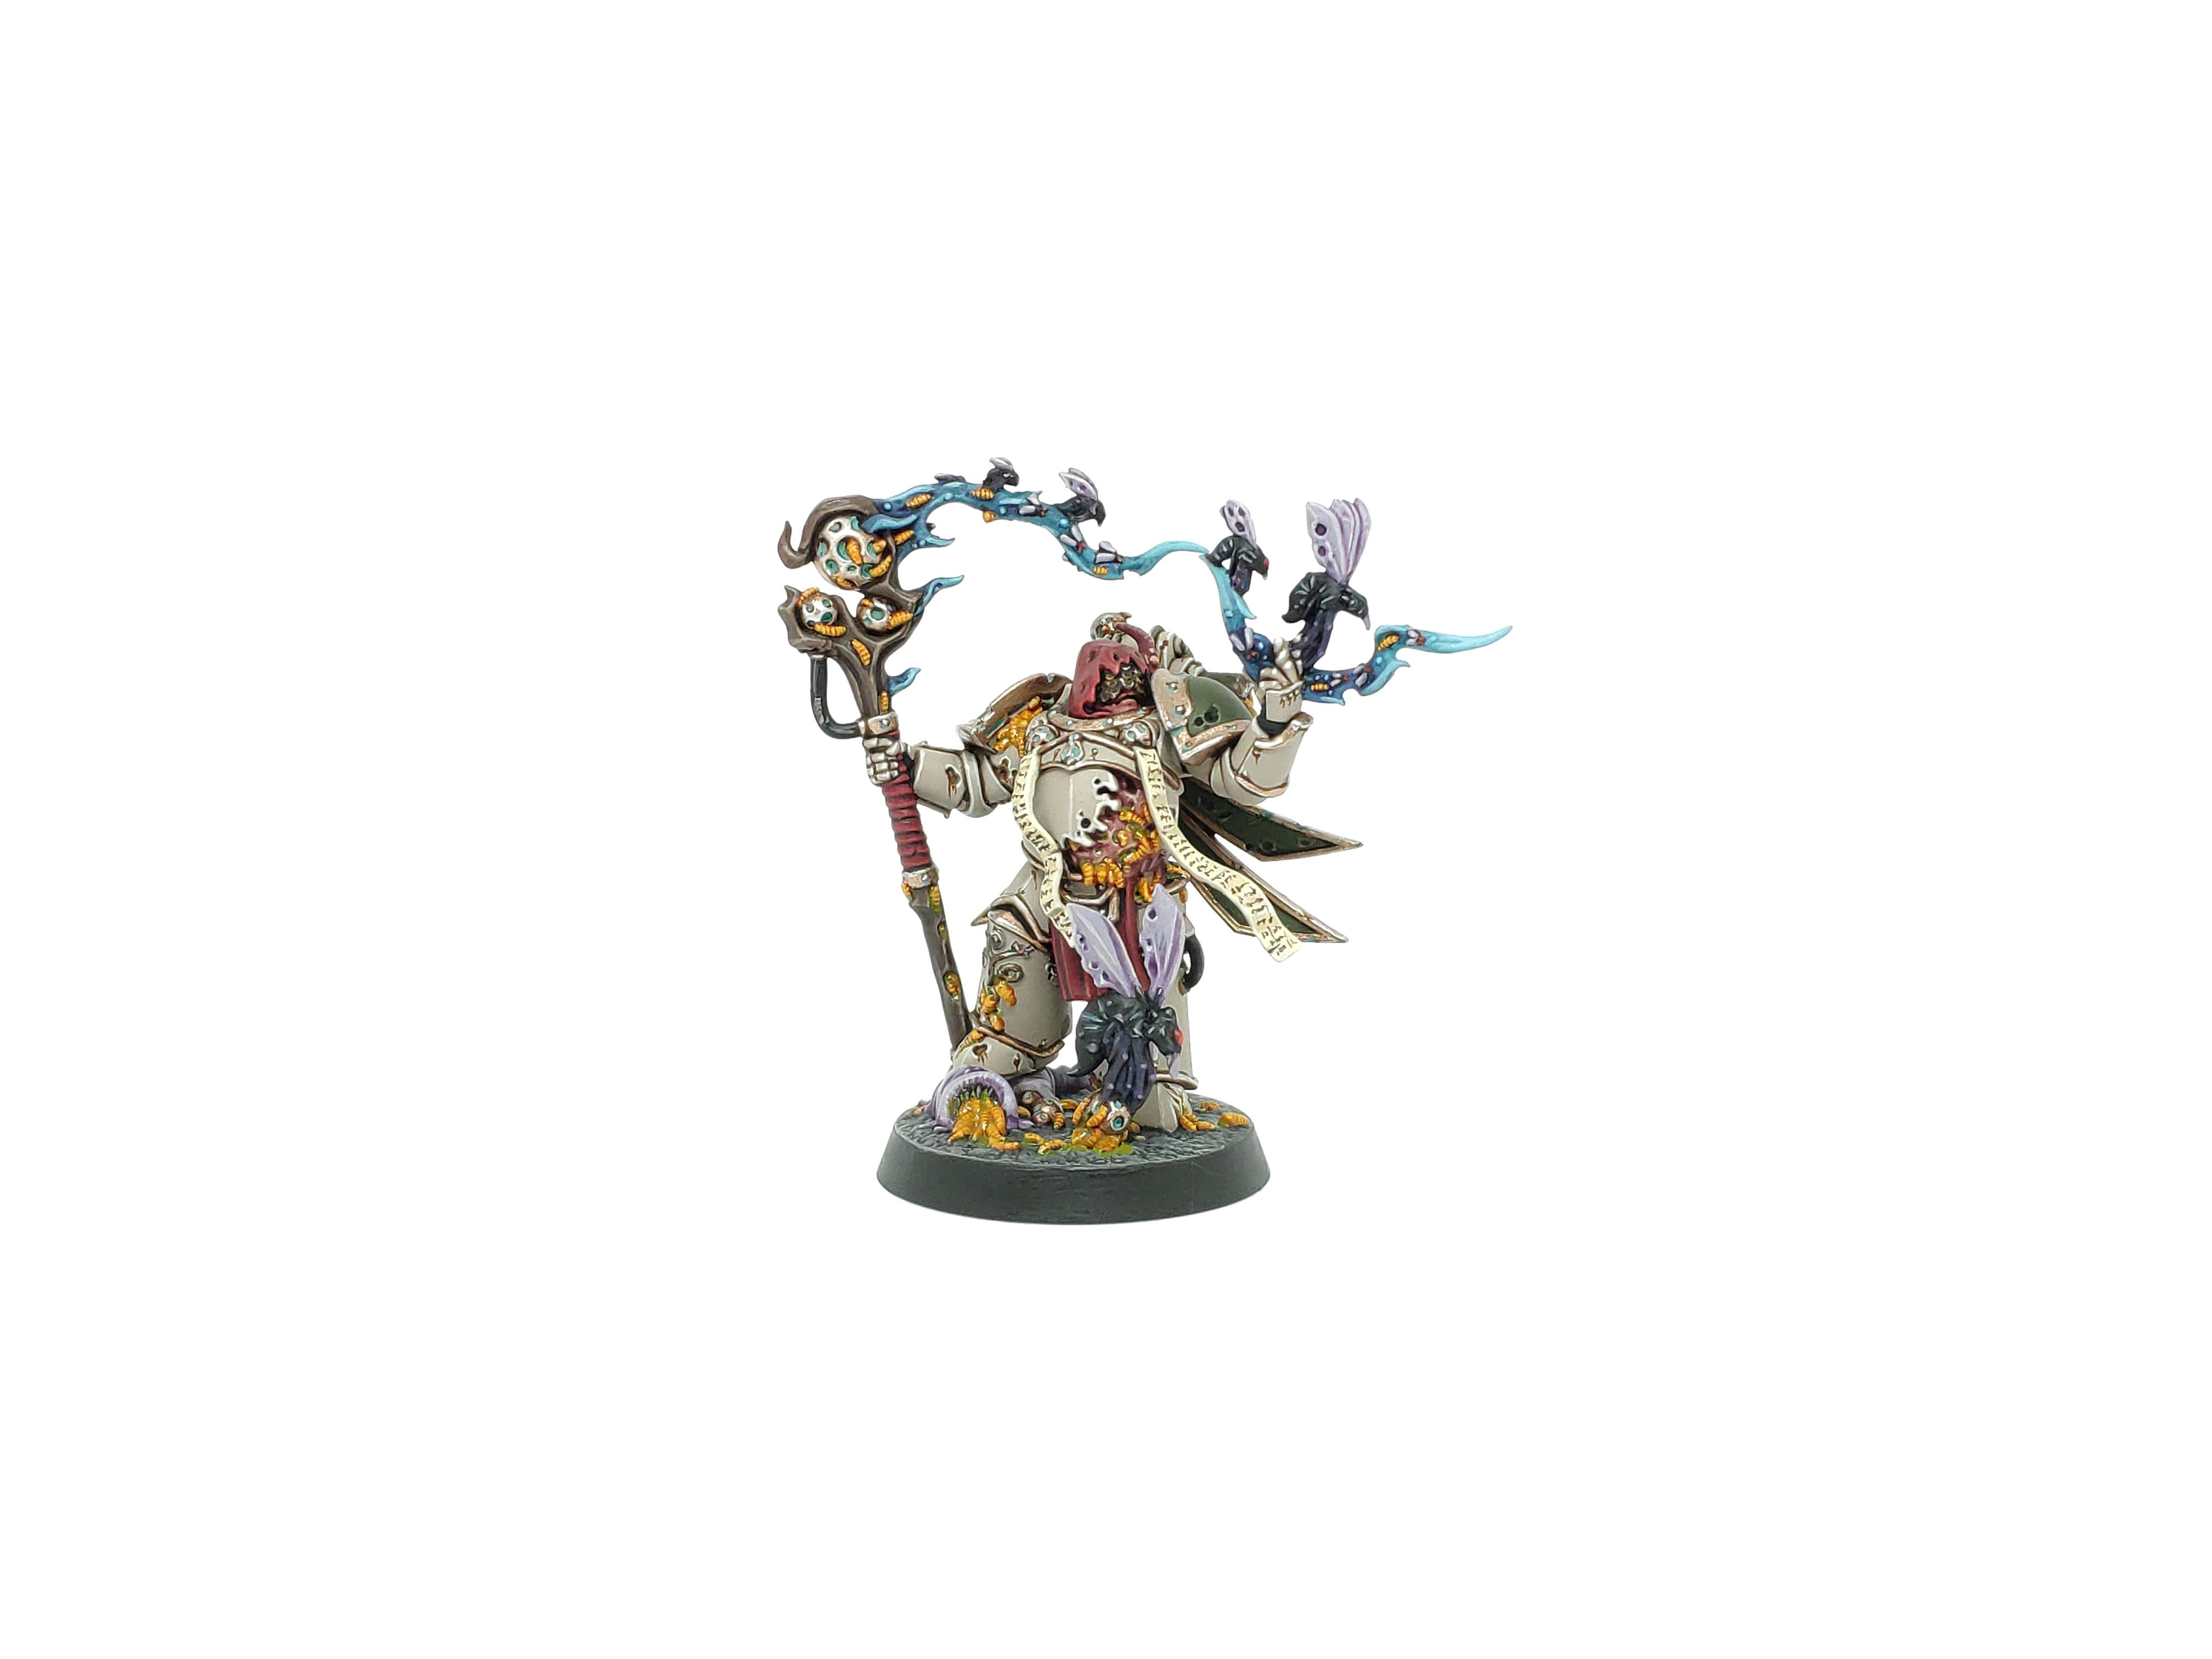 Chaos, Citadel, Death Guard, Games Workshop, Nurgle, Plaguecaster, Sorcerer, Space Marine Heroes, Space Marines